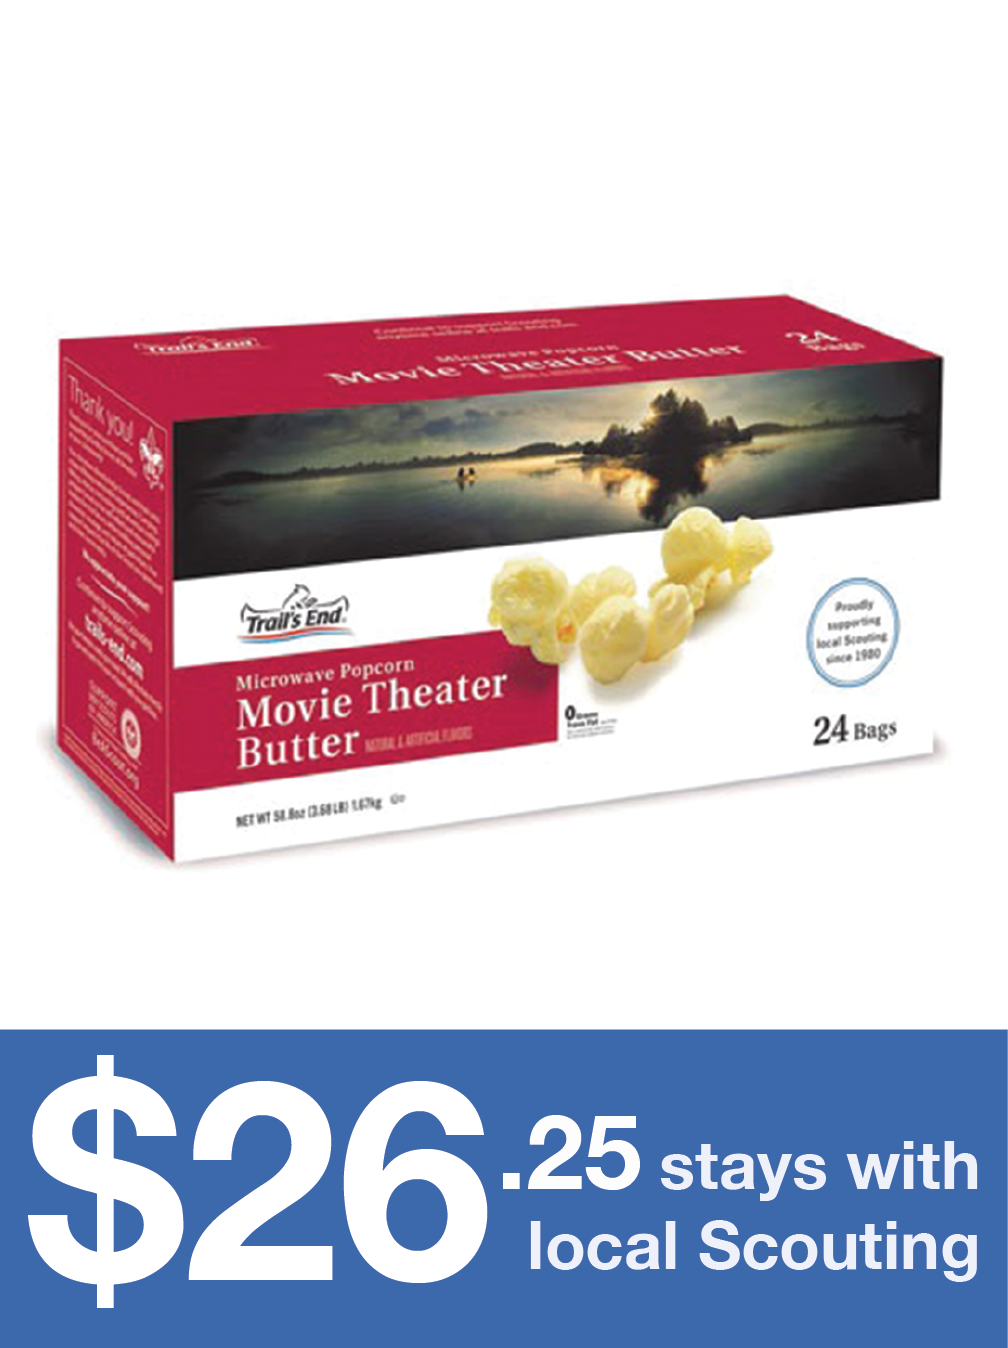 Movie Theater Butter Microwave Popcorn